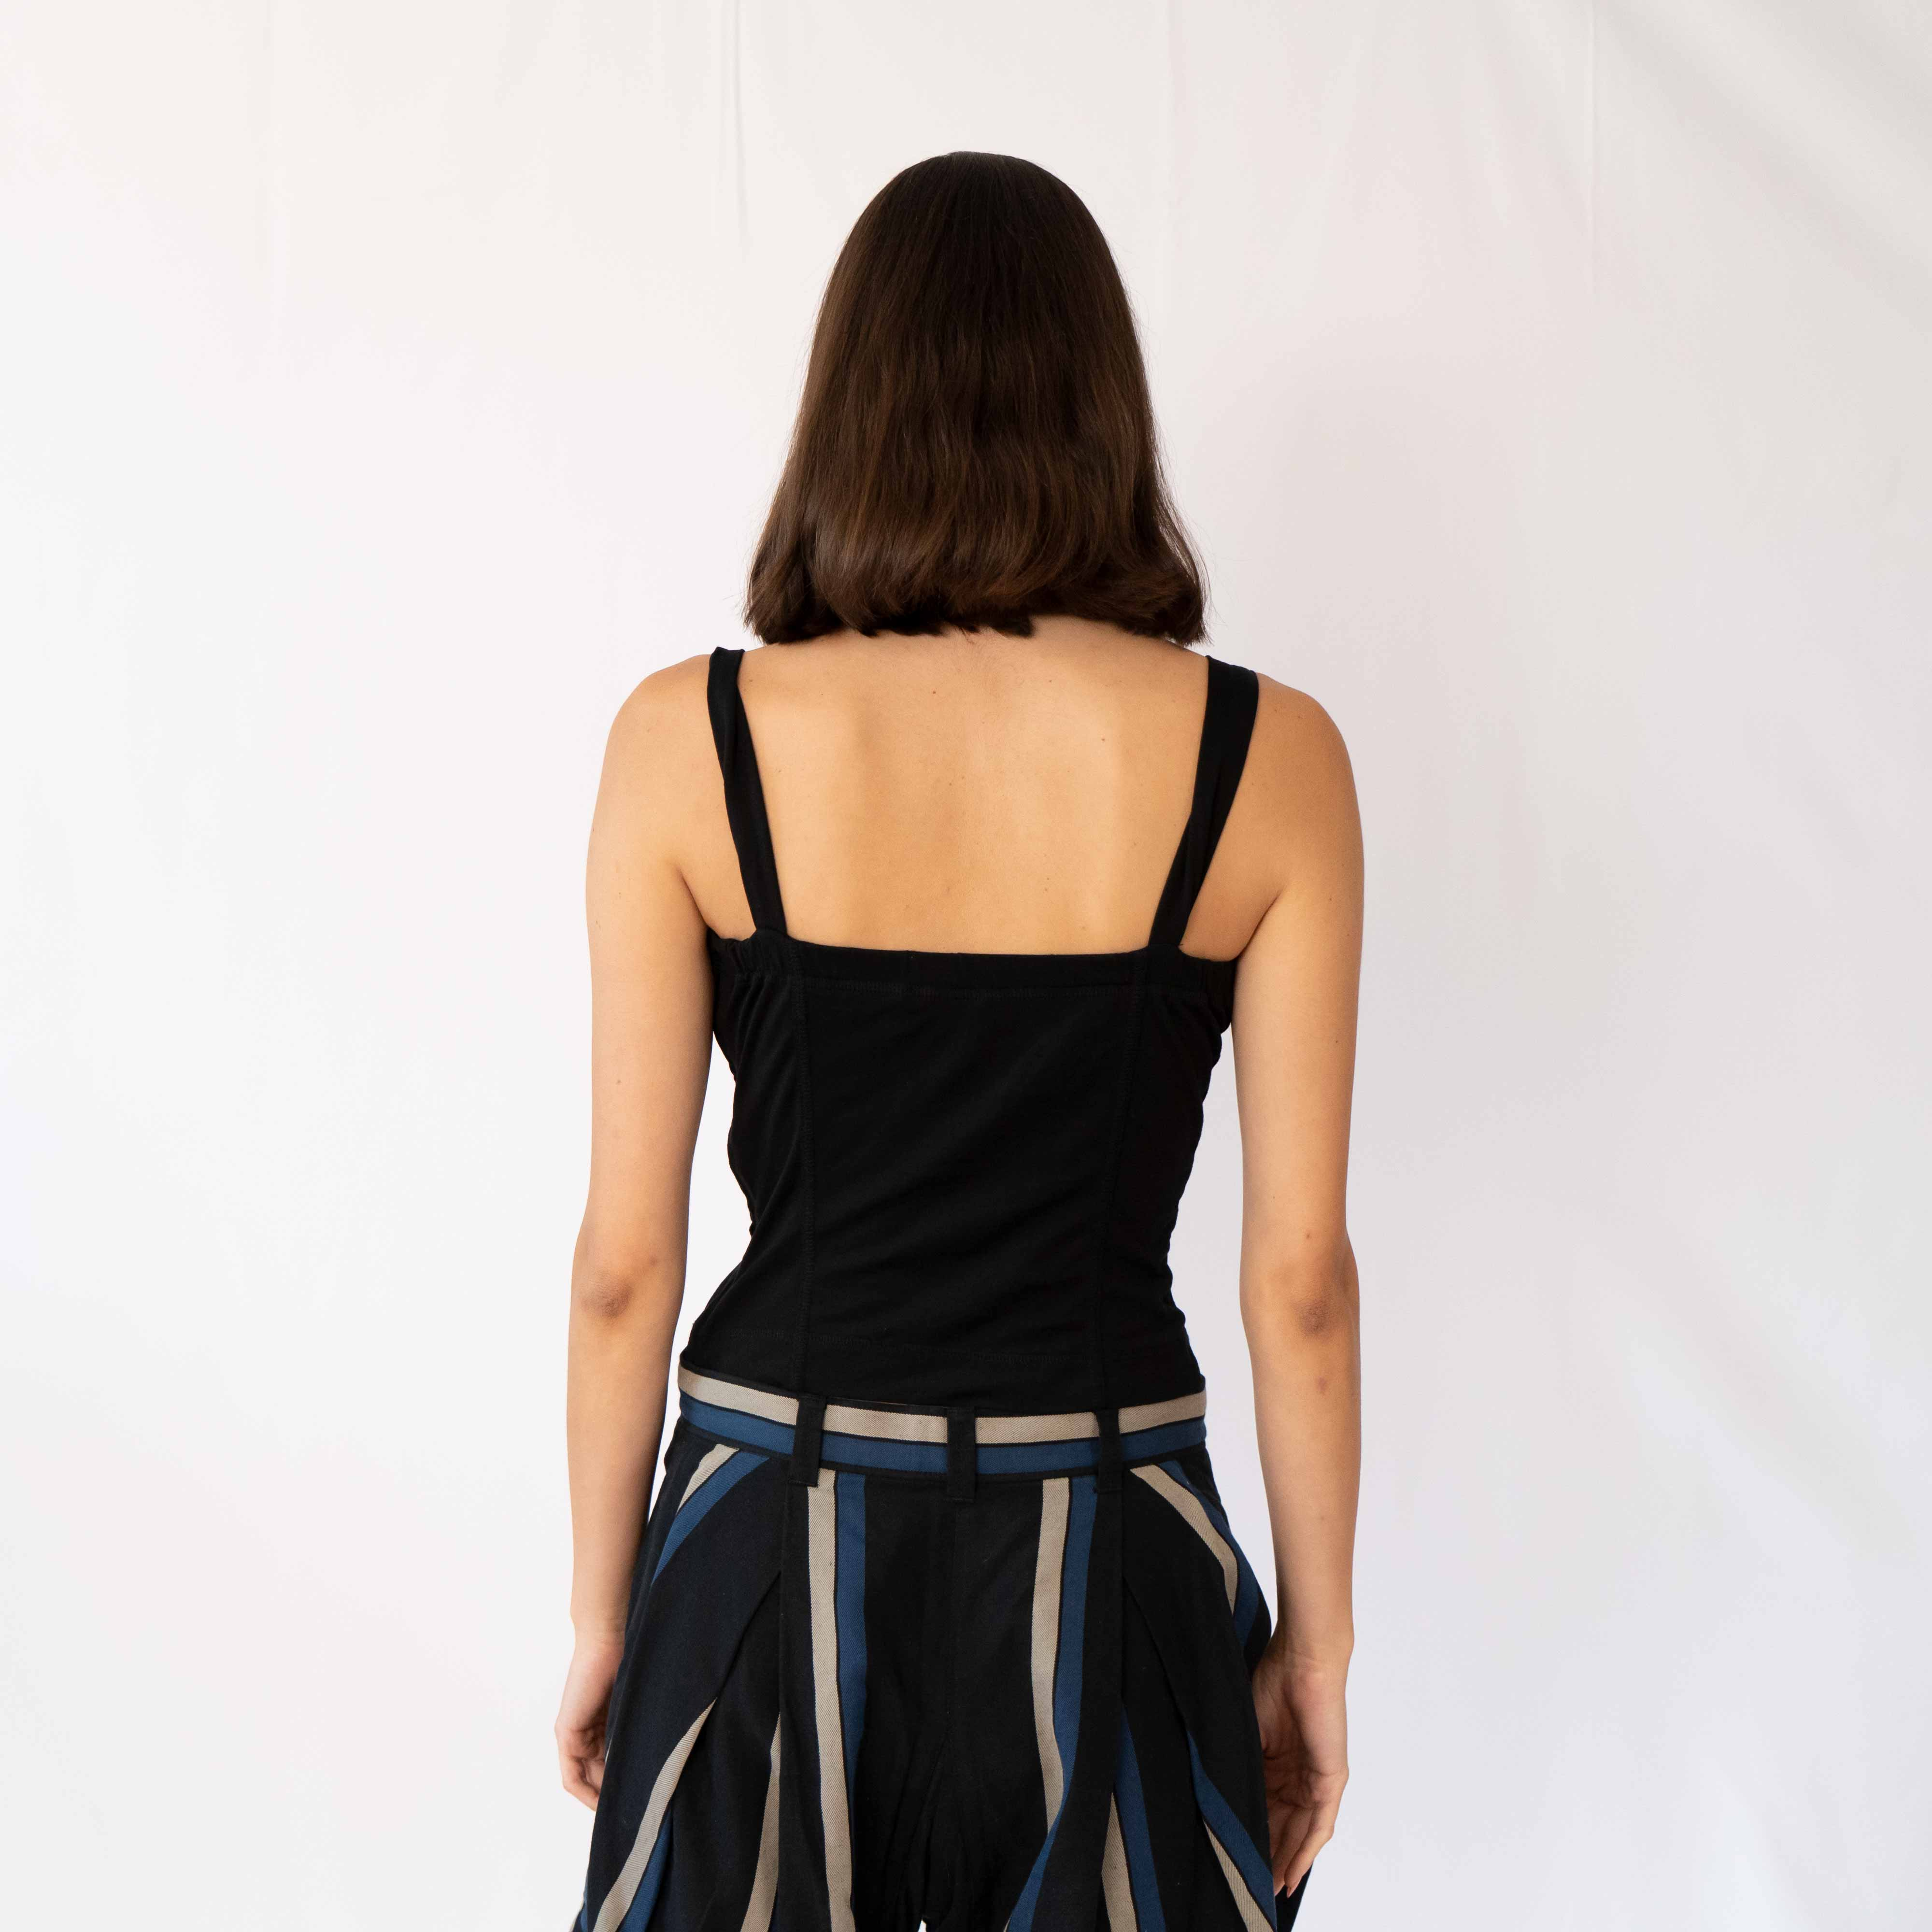 The simplest top with just the best fit. The zipper in the back creates a form-fit for this cotton crop top. The strings are also adjustable so you can make the bust tighter or looser!